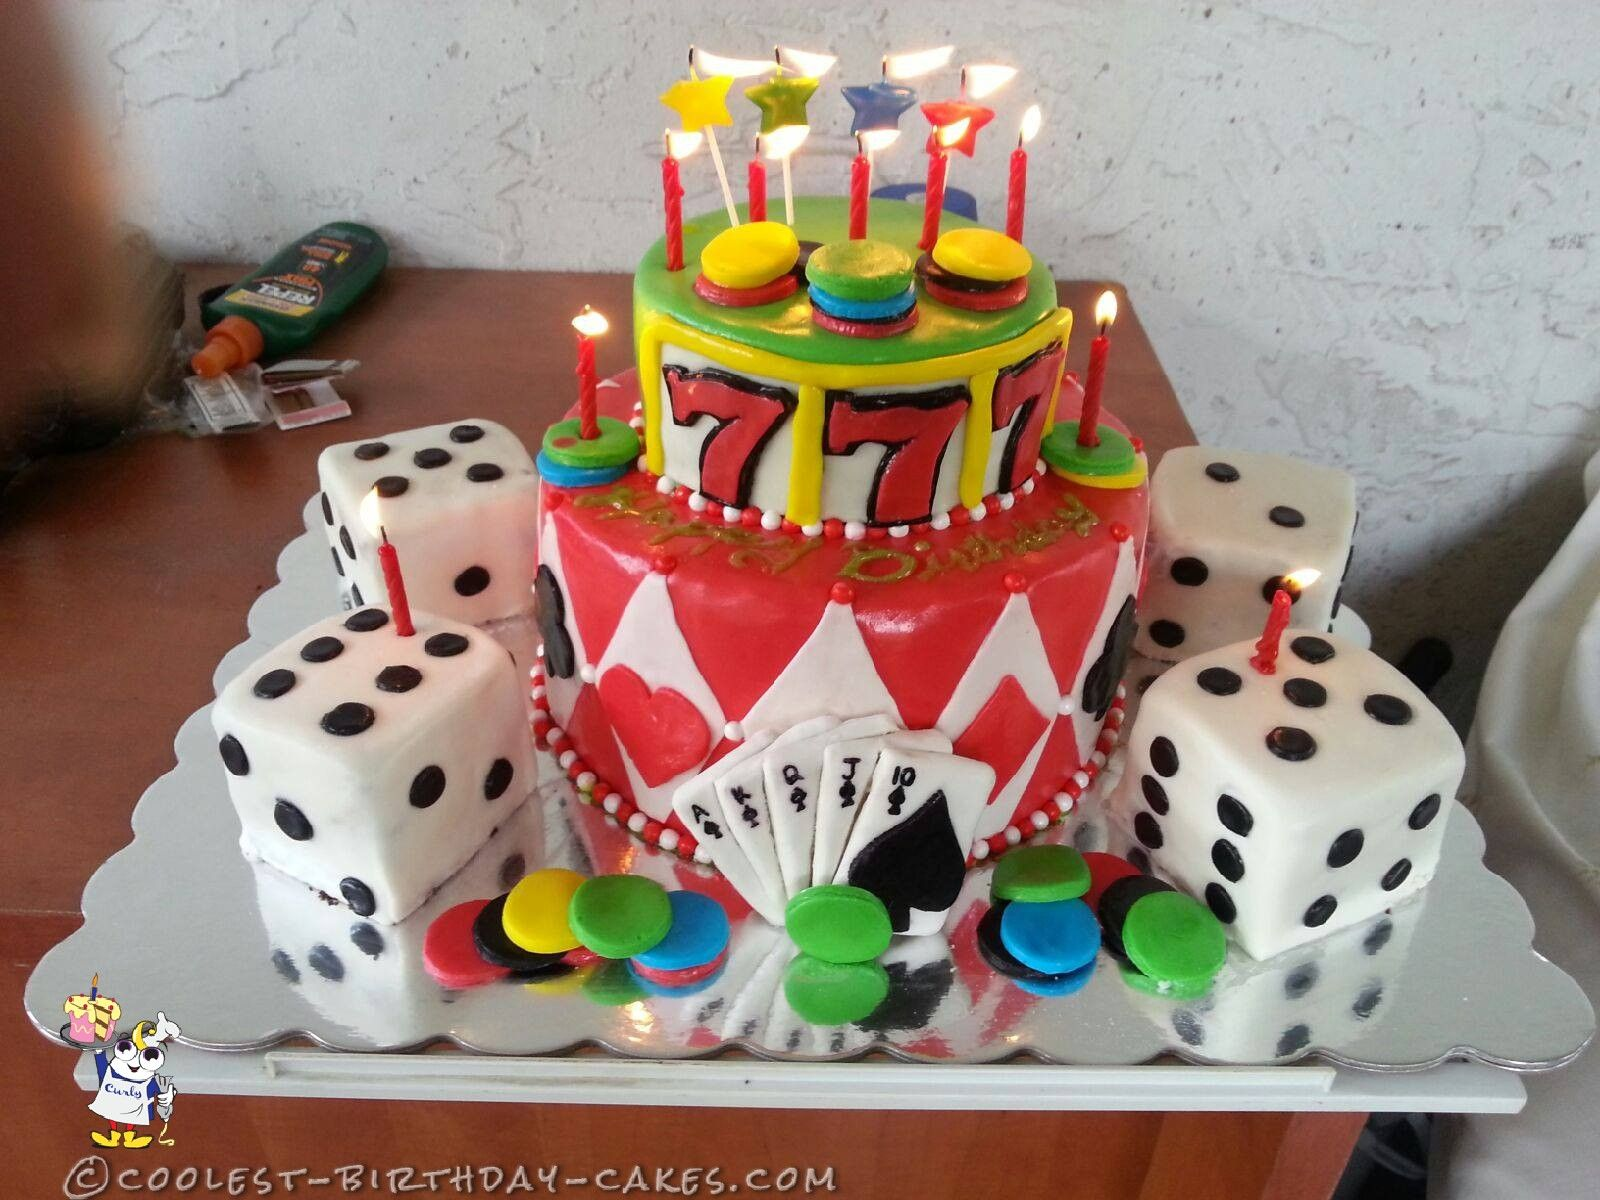 My Fabulous Las Vegas Birthday Cake... Coolest Birthday Cake Ideas